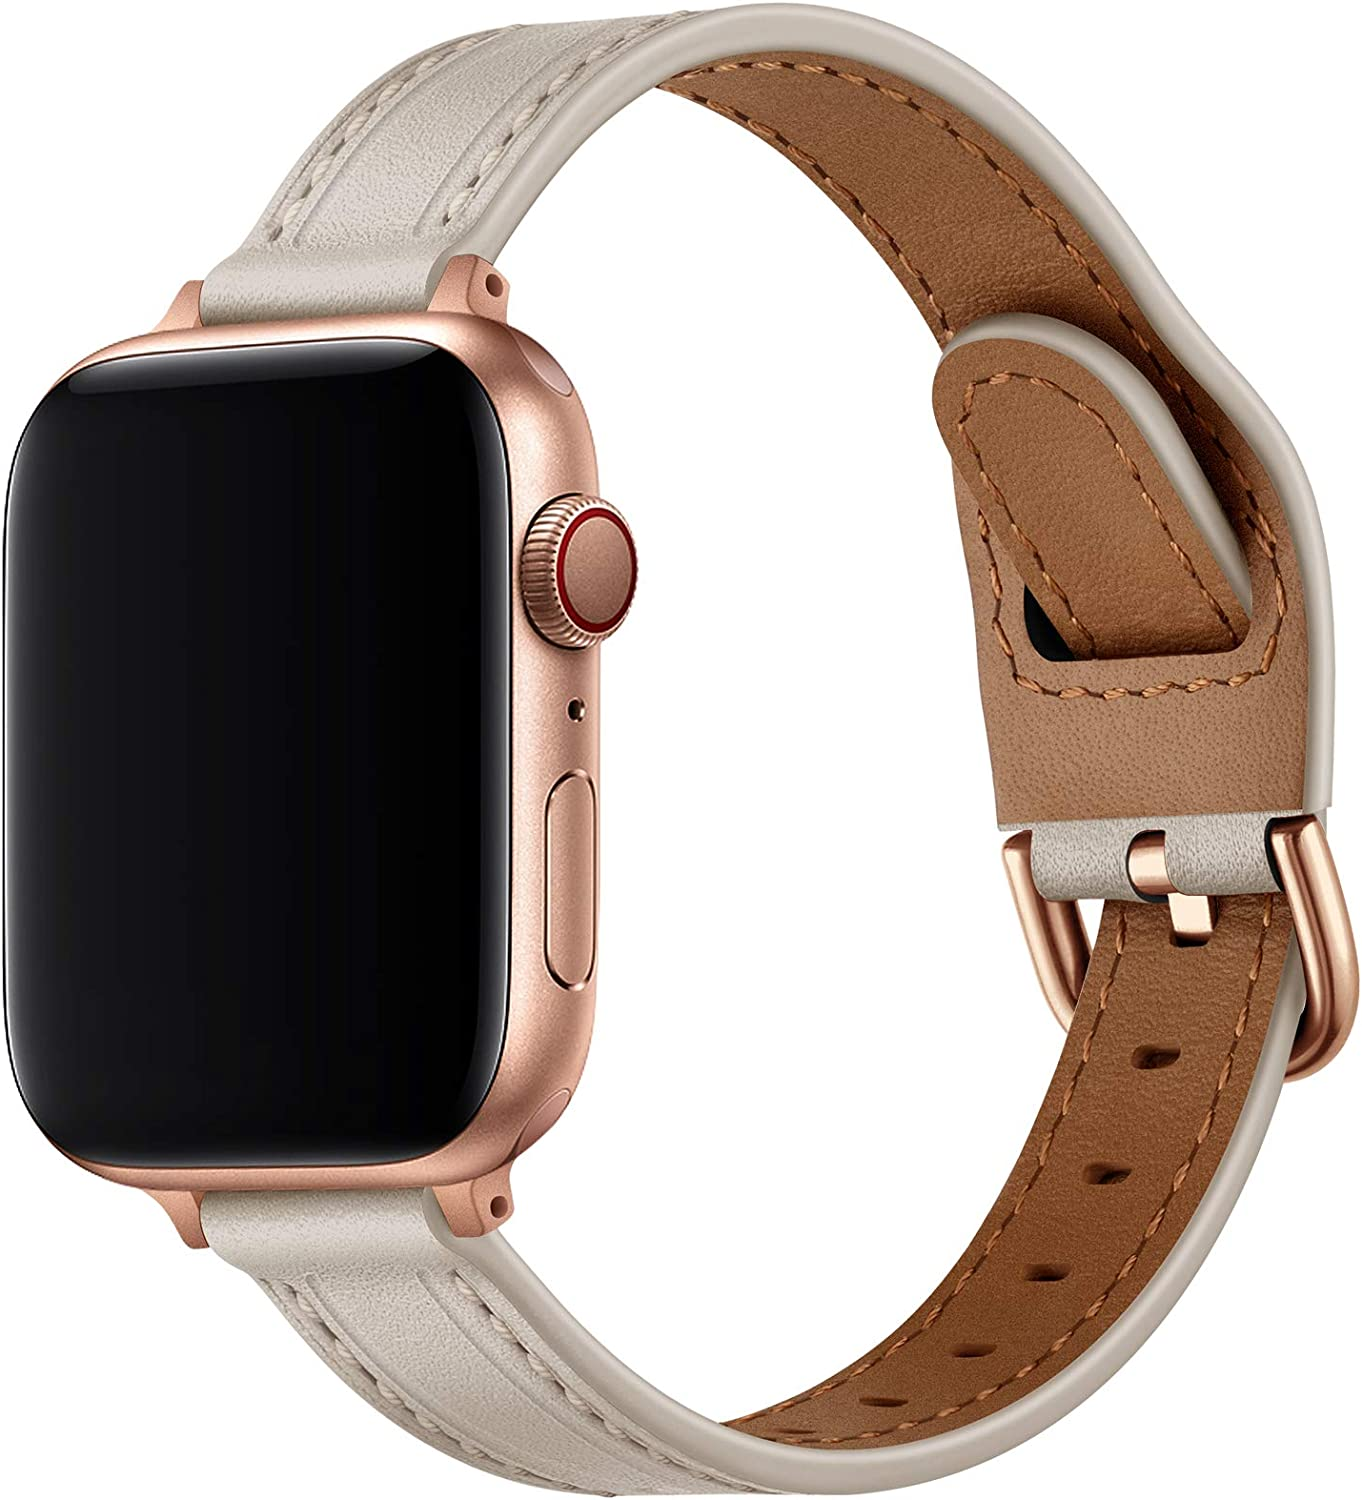 OUHENG Slim Band Compatible with Apple Watch Bands 40mm 38mm 44mm 42mm, Women Thin Genuine Leather Replacement Strap Compatible with iWatch SE Series 6/5/4/3/2/1 (Ivory White/Rose Gold, 40mm 38mm)